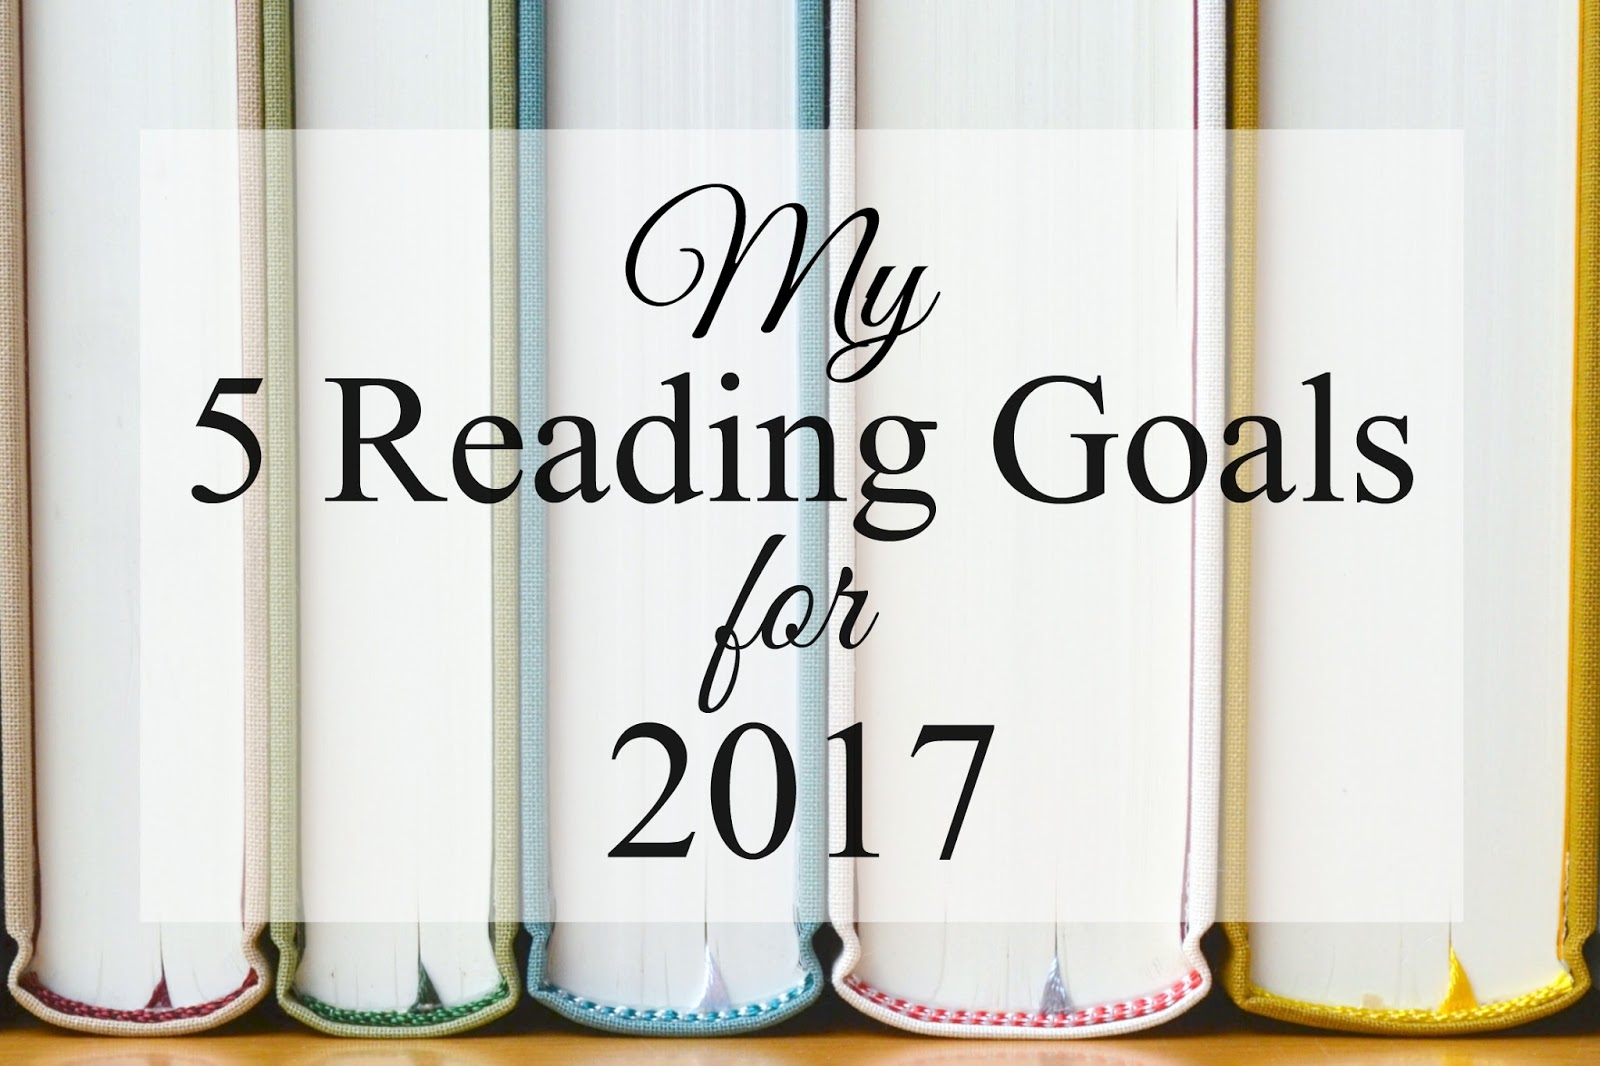 My 5 Reading Goals for 2017